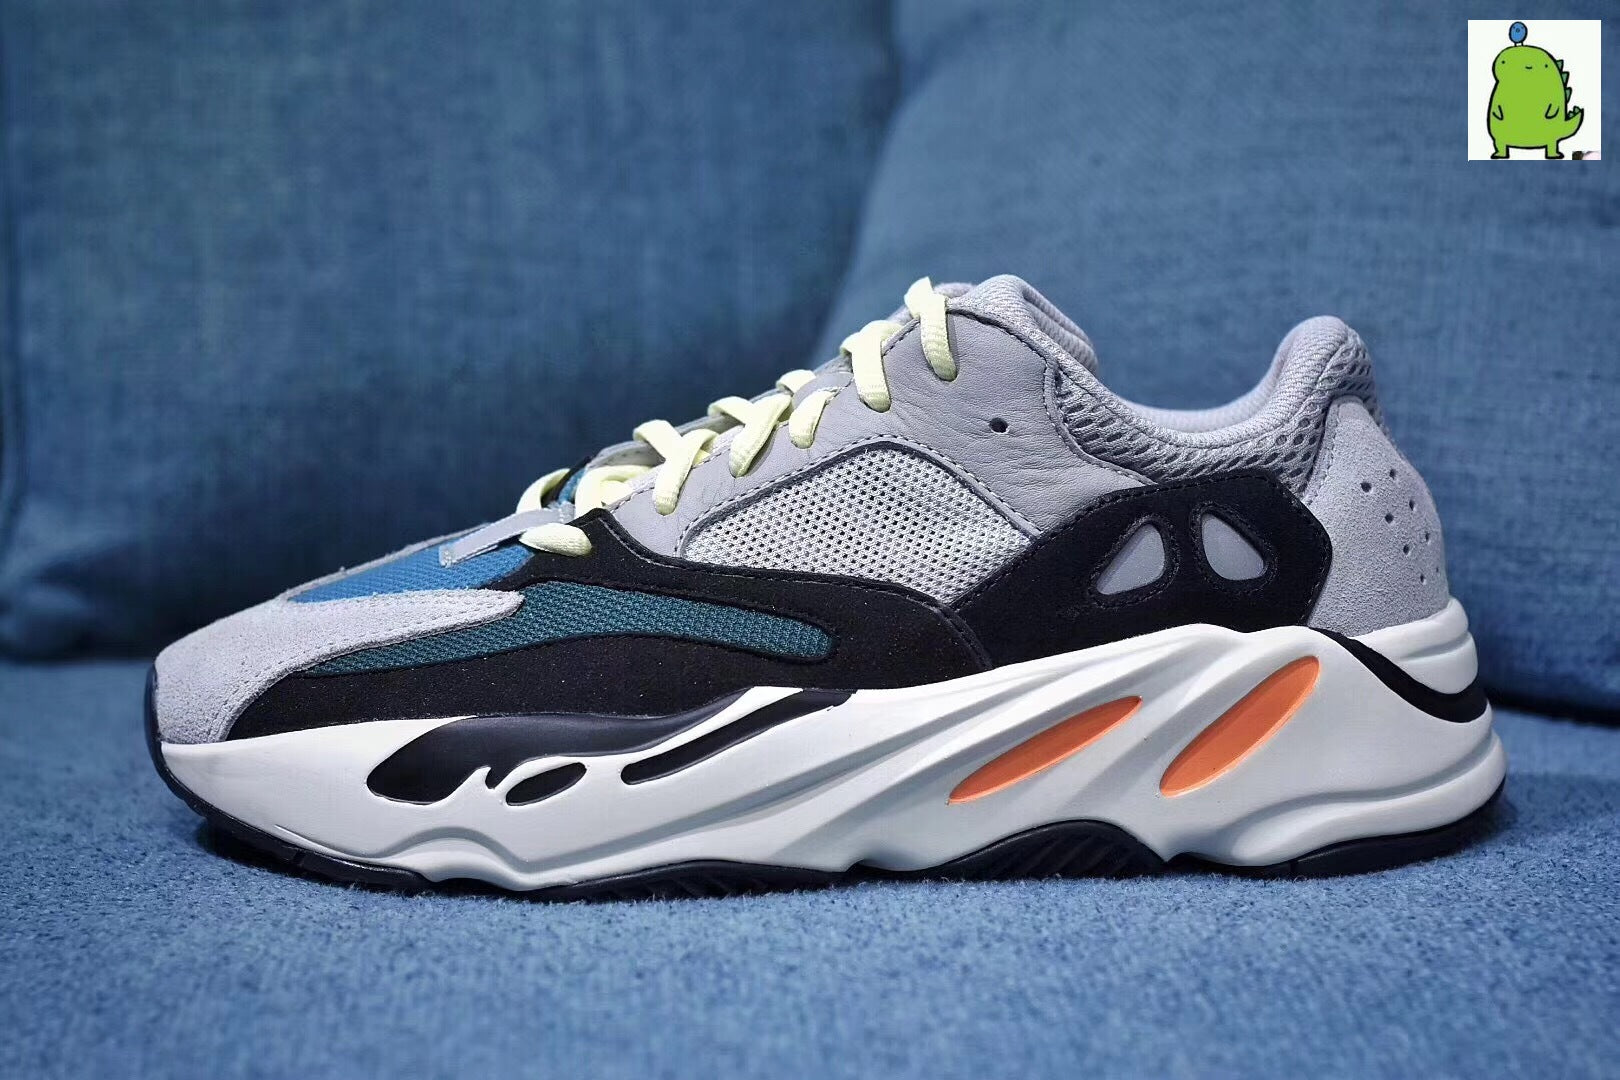 784e3d9c123db Adidas Yeezy Wave Runner 700 – Kickass Feet